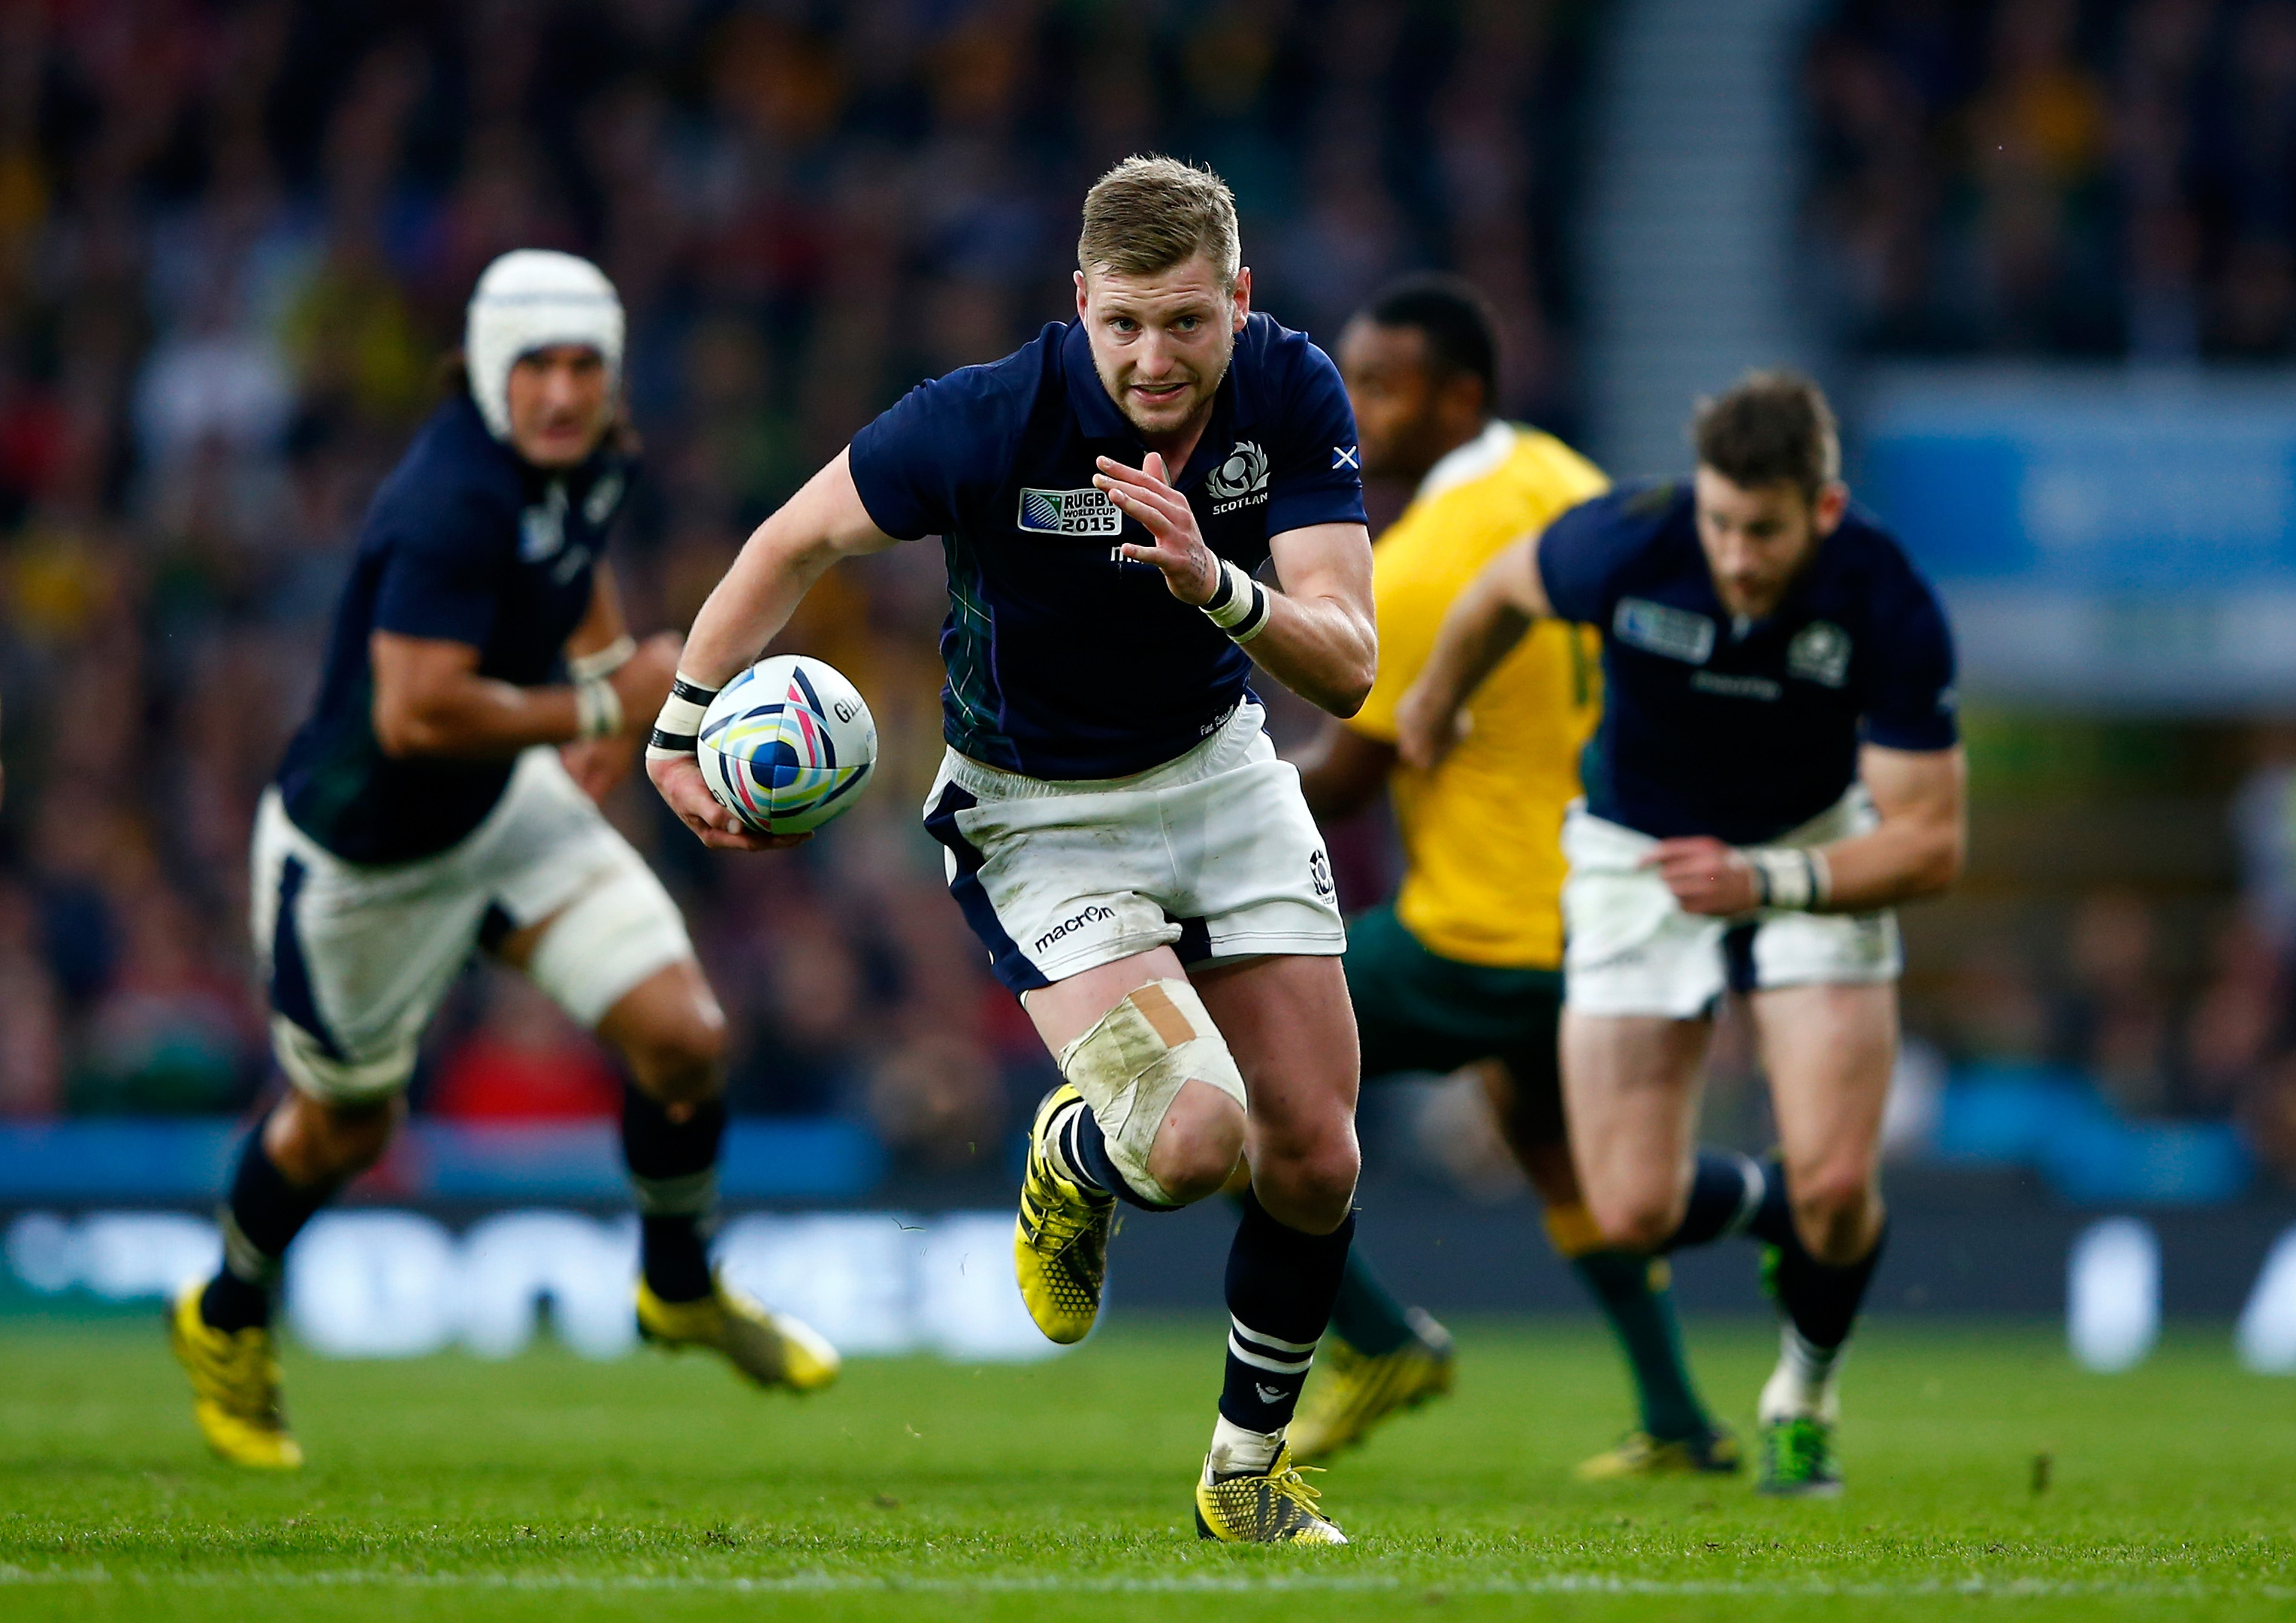 Scotland stand-off Finn Russell will make his return to competitive action this weekend.